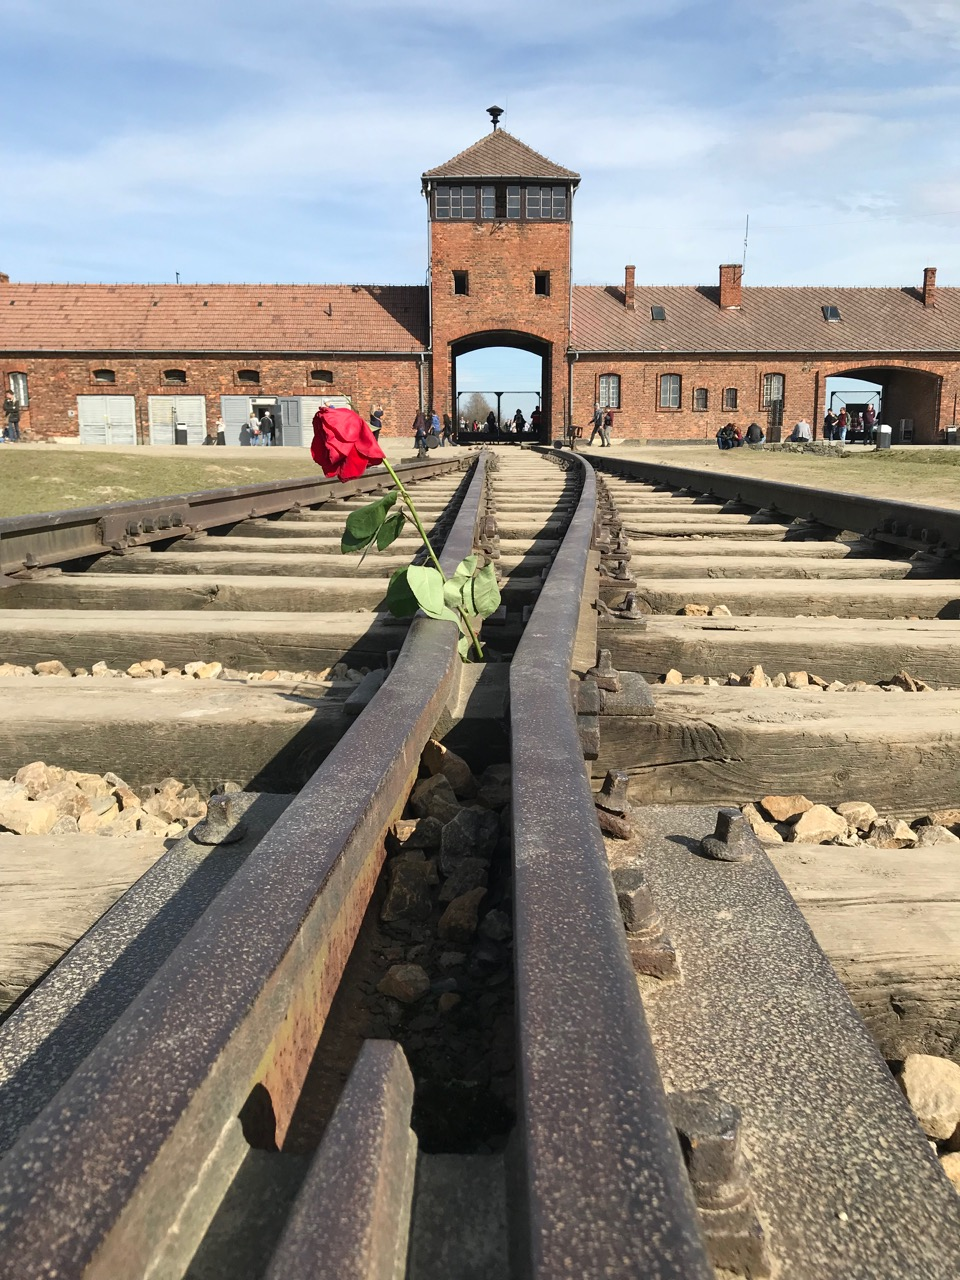 A view of the entrance gate from inside Birkenau on the tracks leading to the crematorium